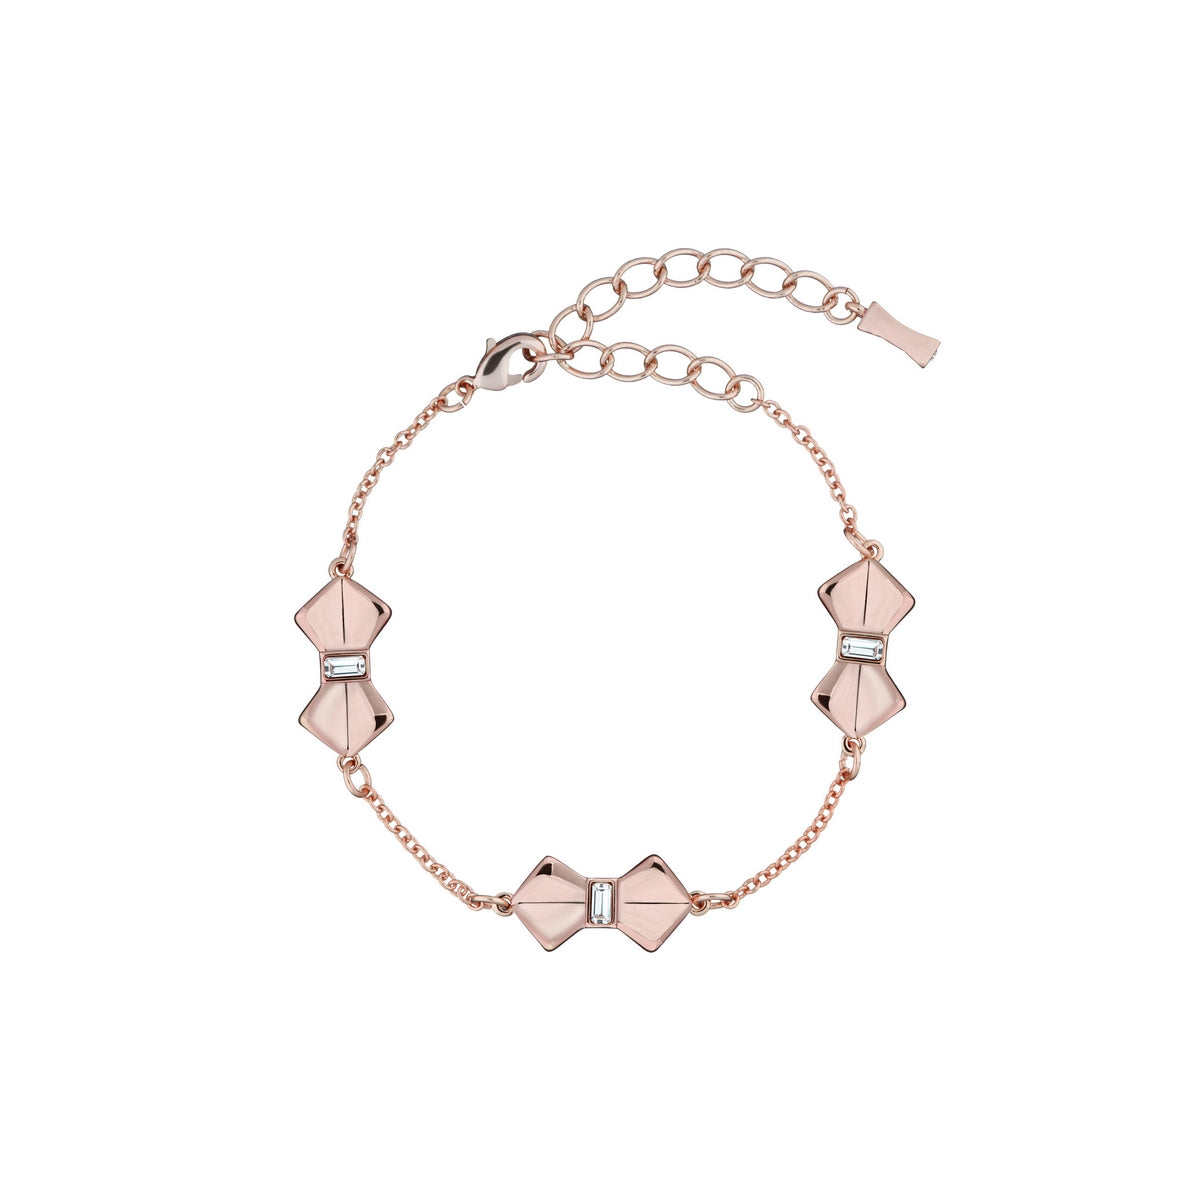 SORELL: SOLITAIRE BOW BRACELET ROSE GOLD